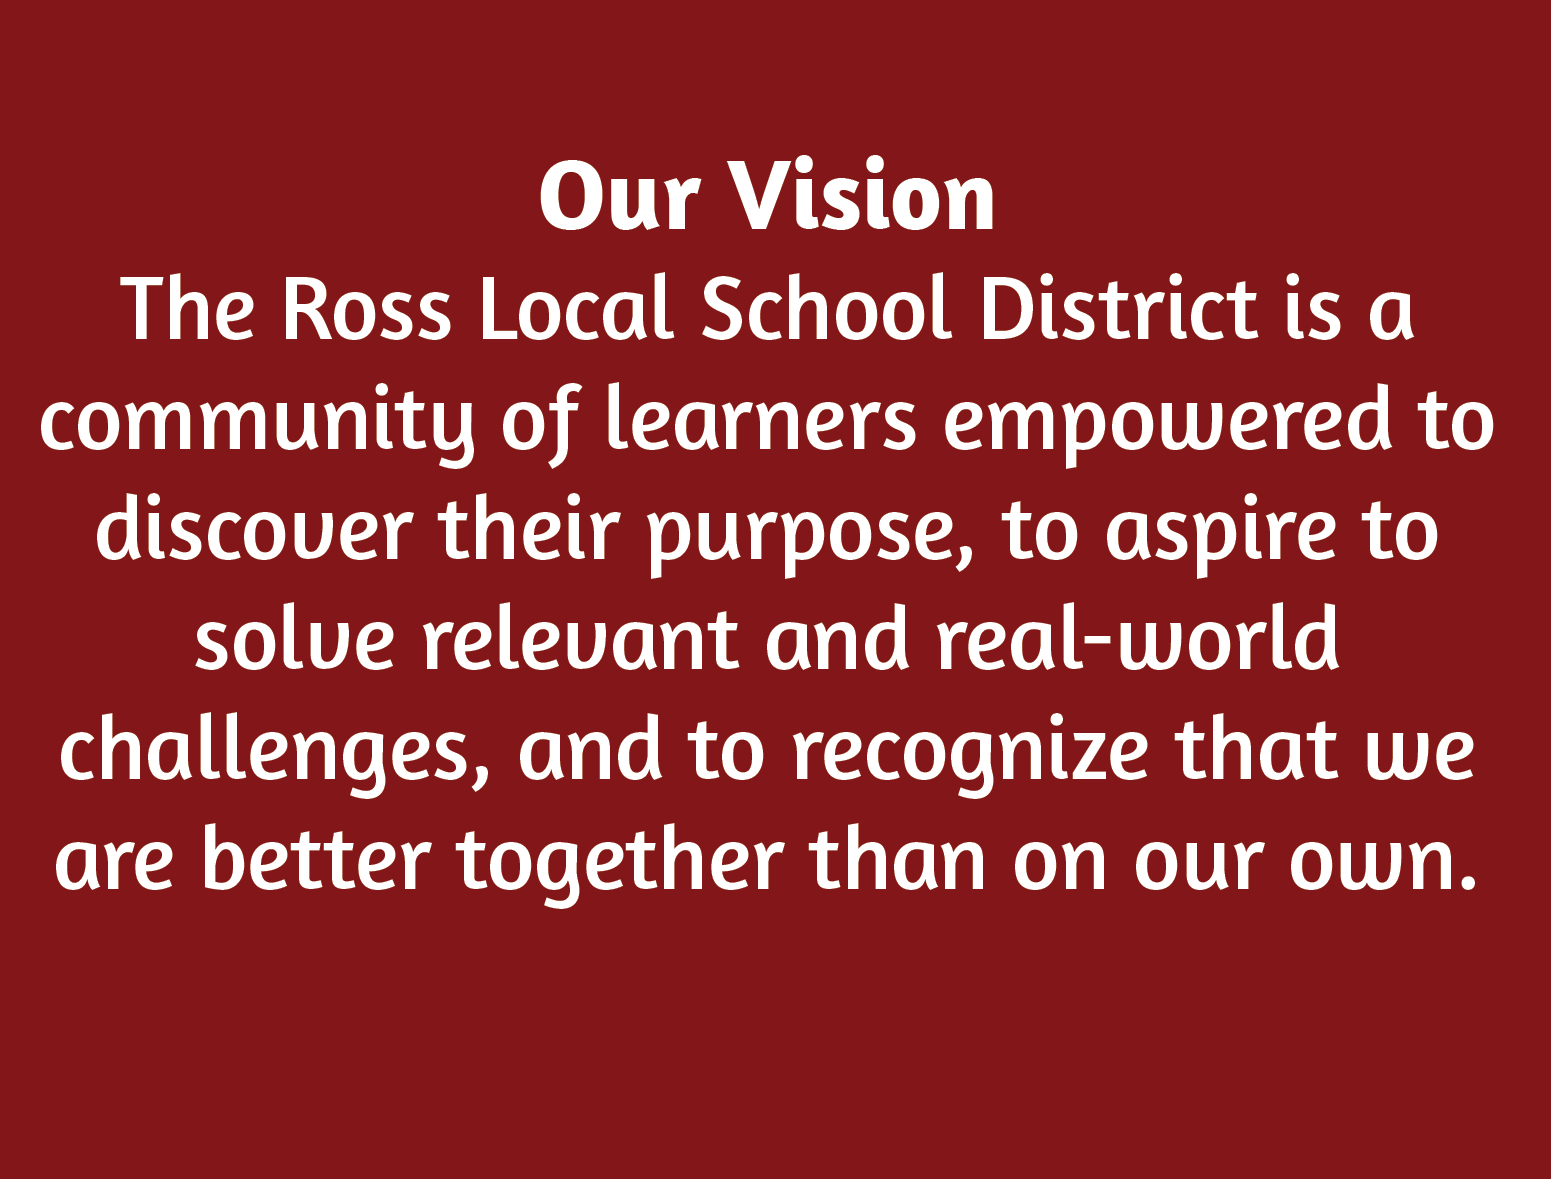 "Our Vision image which reads ""The Ross Local School District is a community of learners empowered to discover their purpose, to aspire to solve relevant and real-world challenges, and to recognize that we are better together than on our own."""